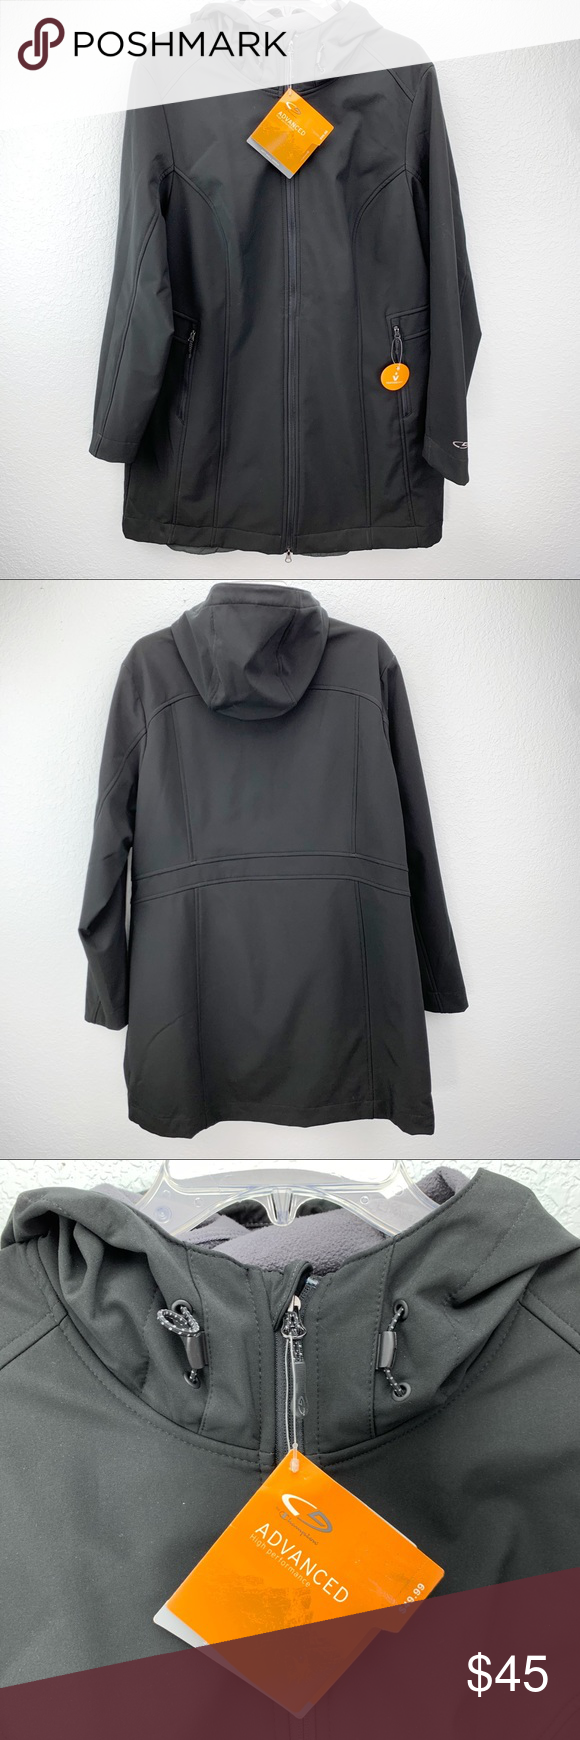 CHAMPION Men/'s Venture Dry Black Water Resist Soft-shell Hood Jacket Size XXL